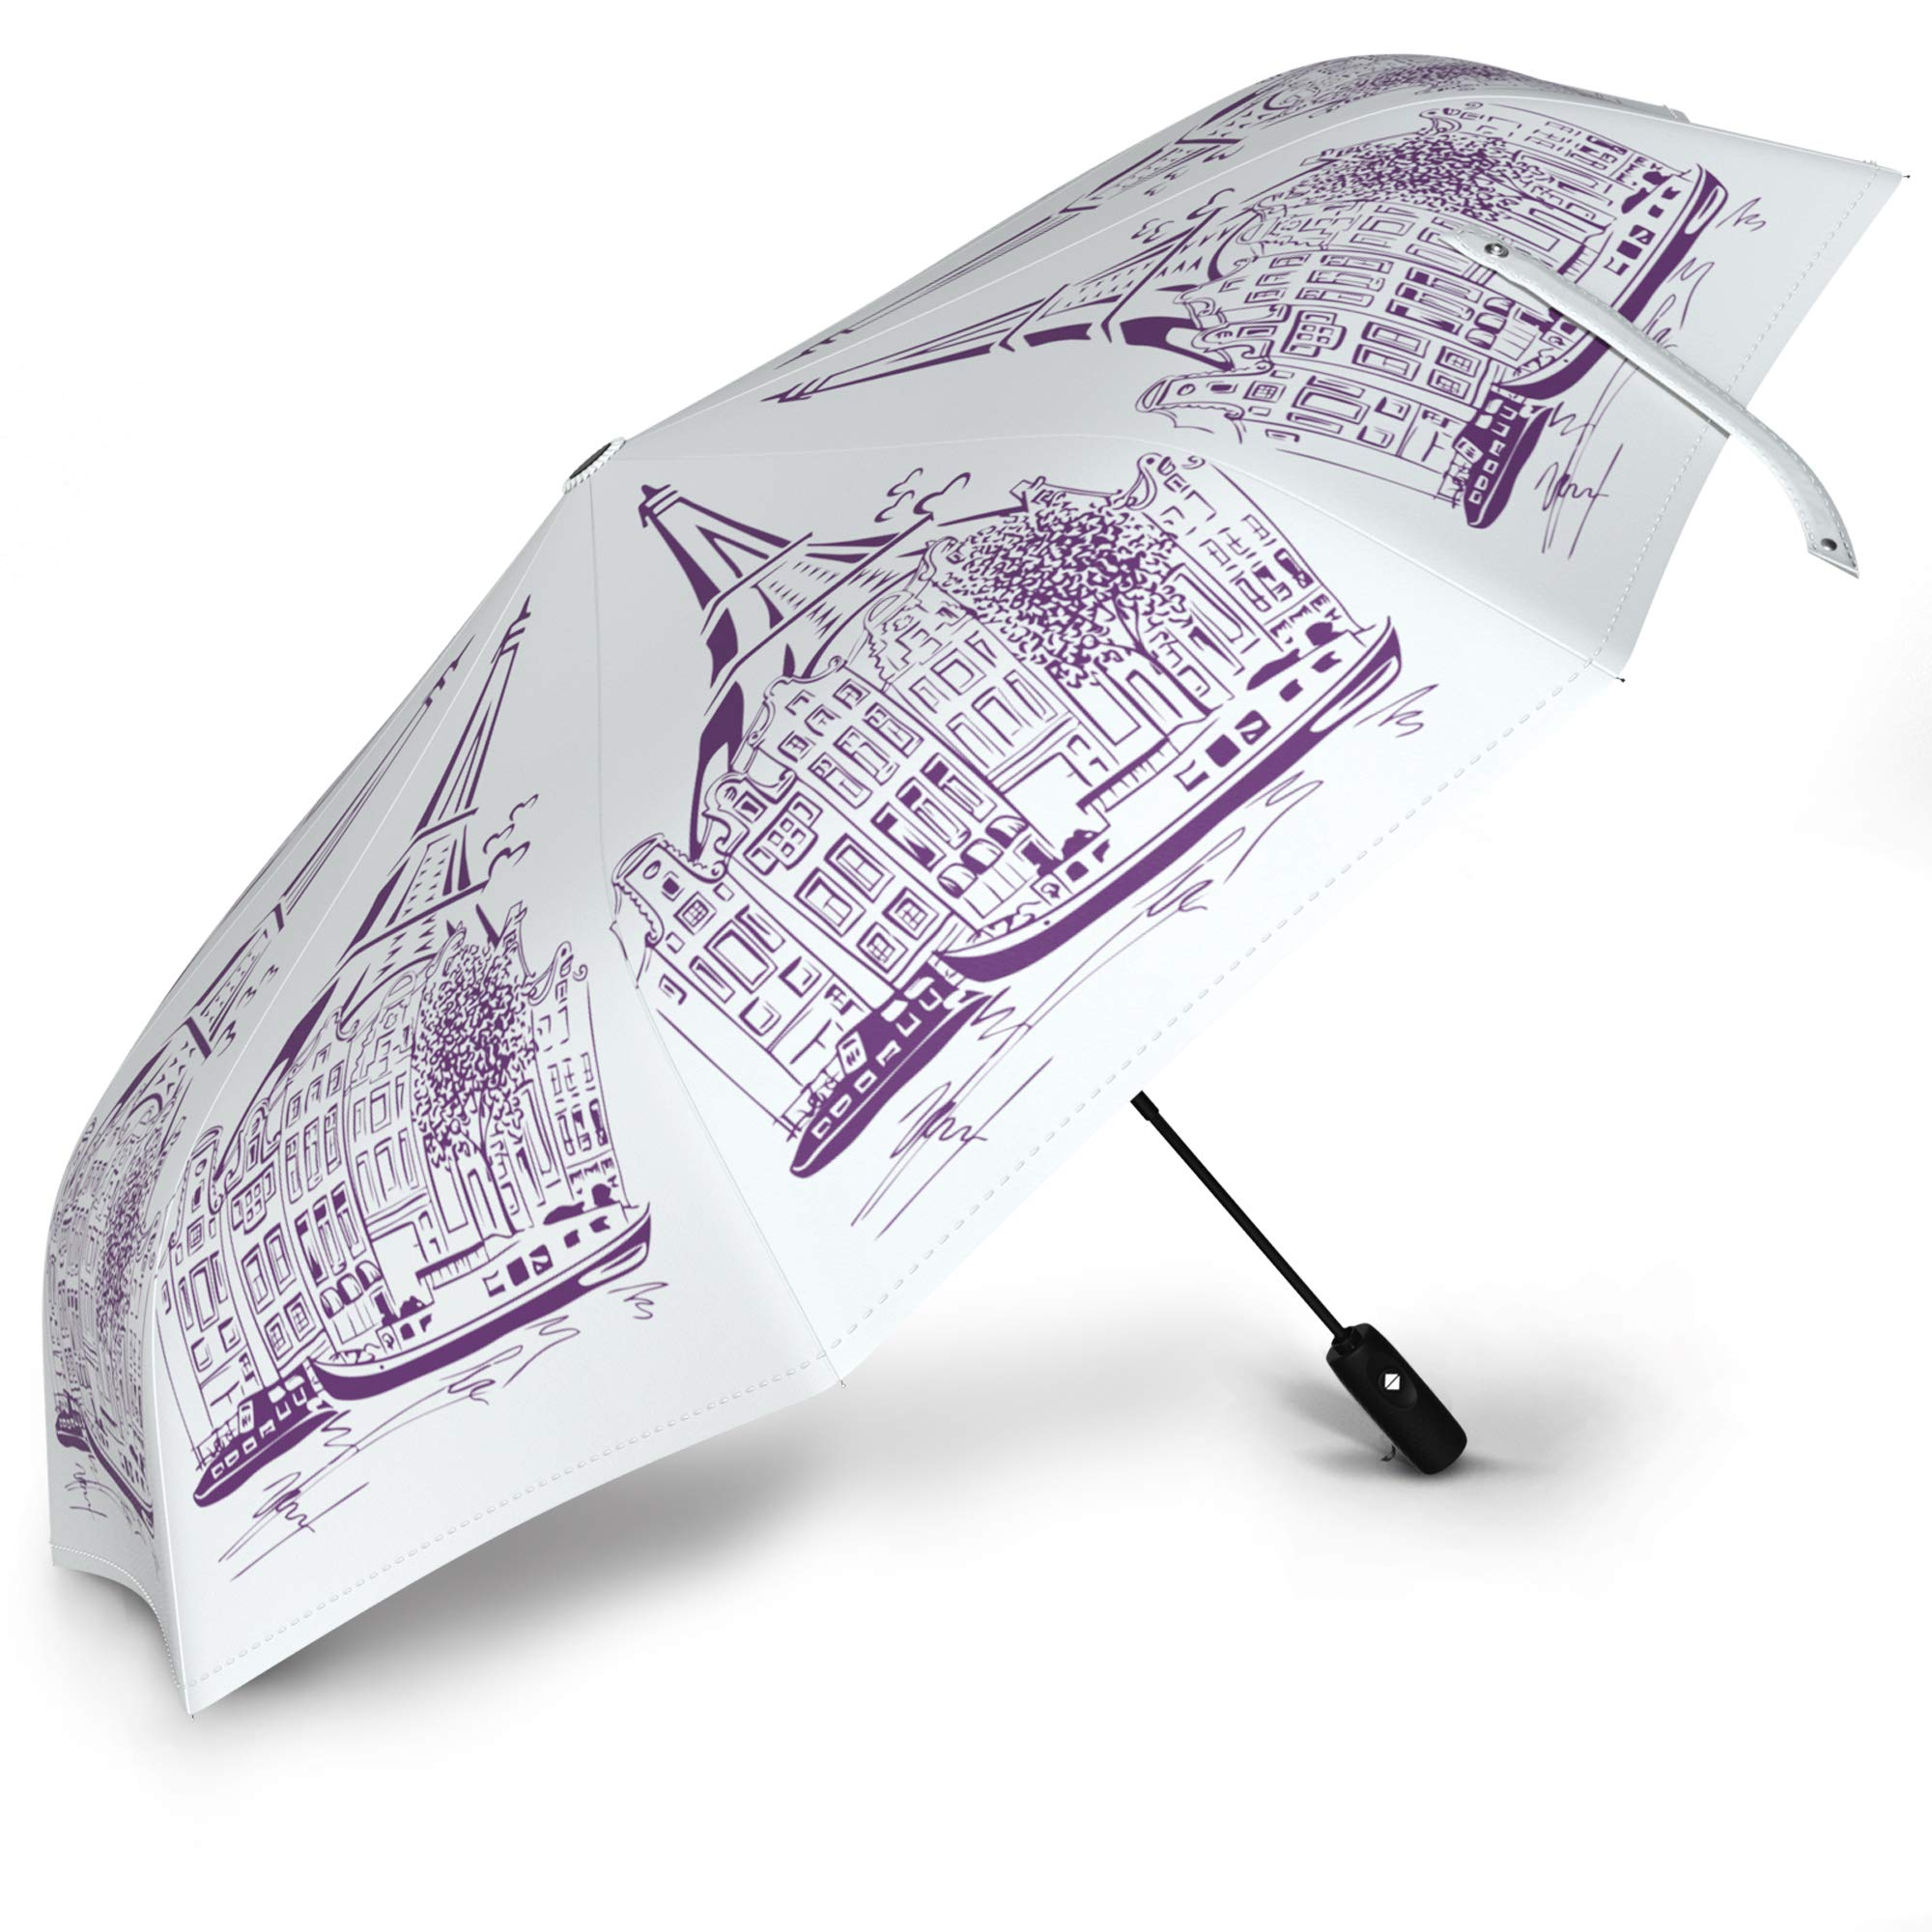 EIFFEL TOWER THEMED UMBRELLA